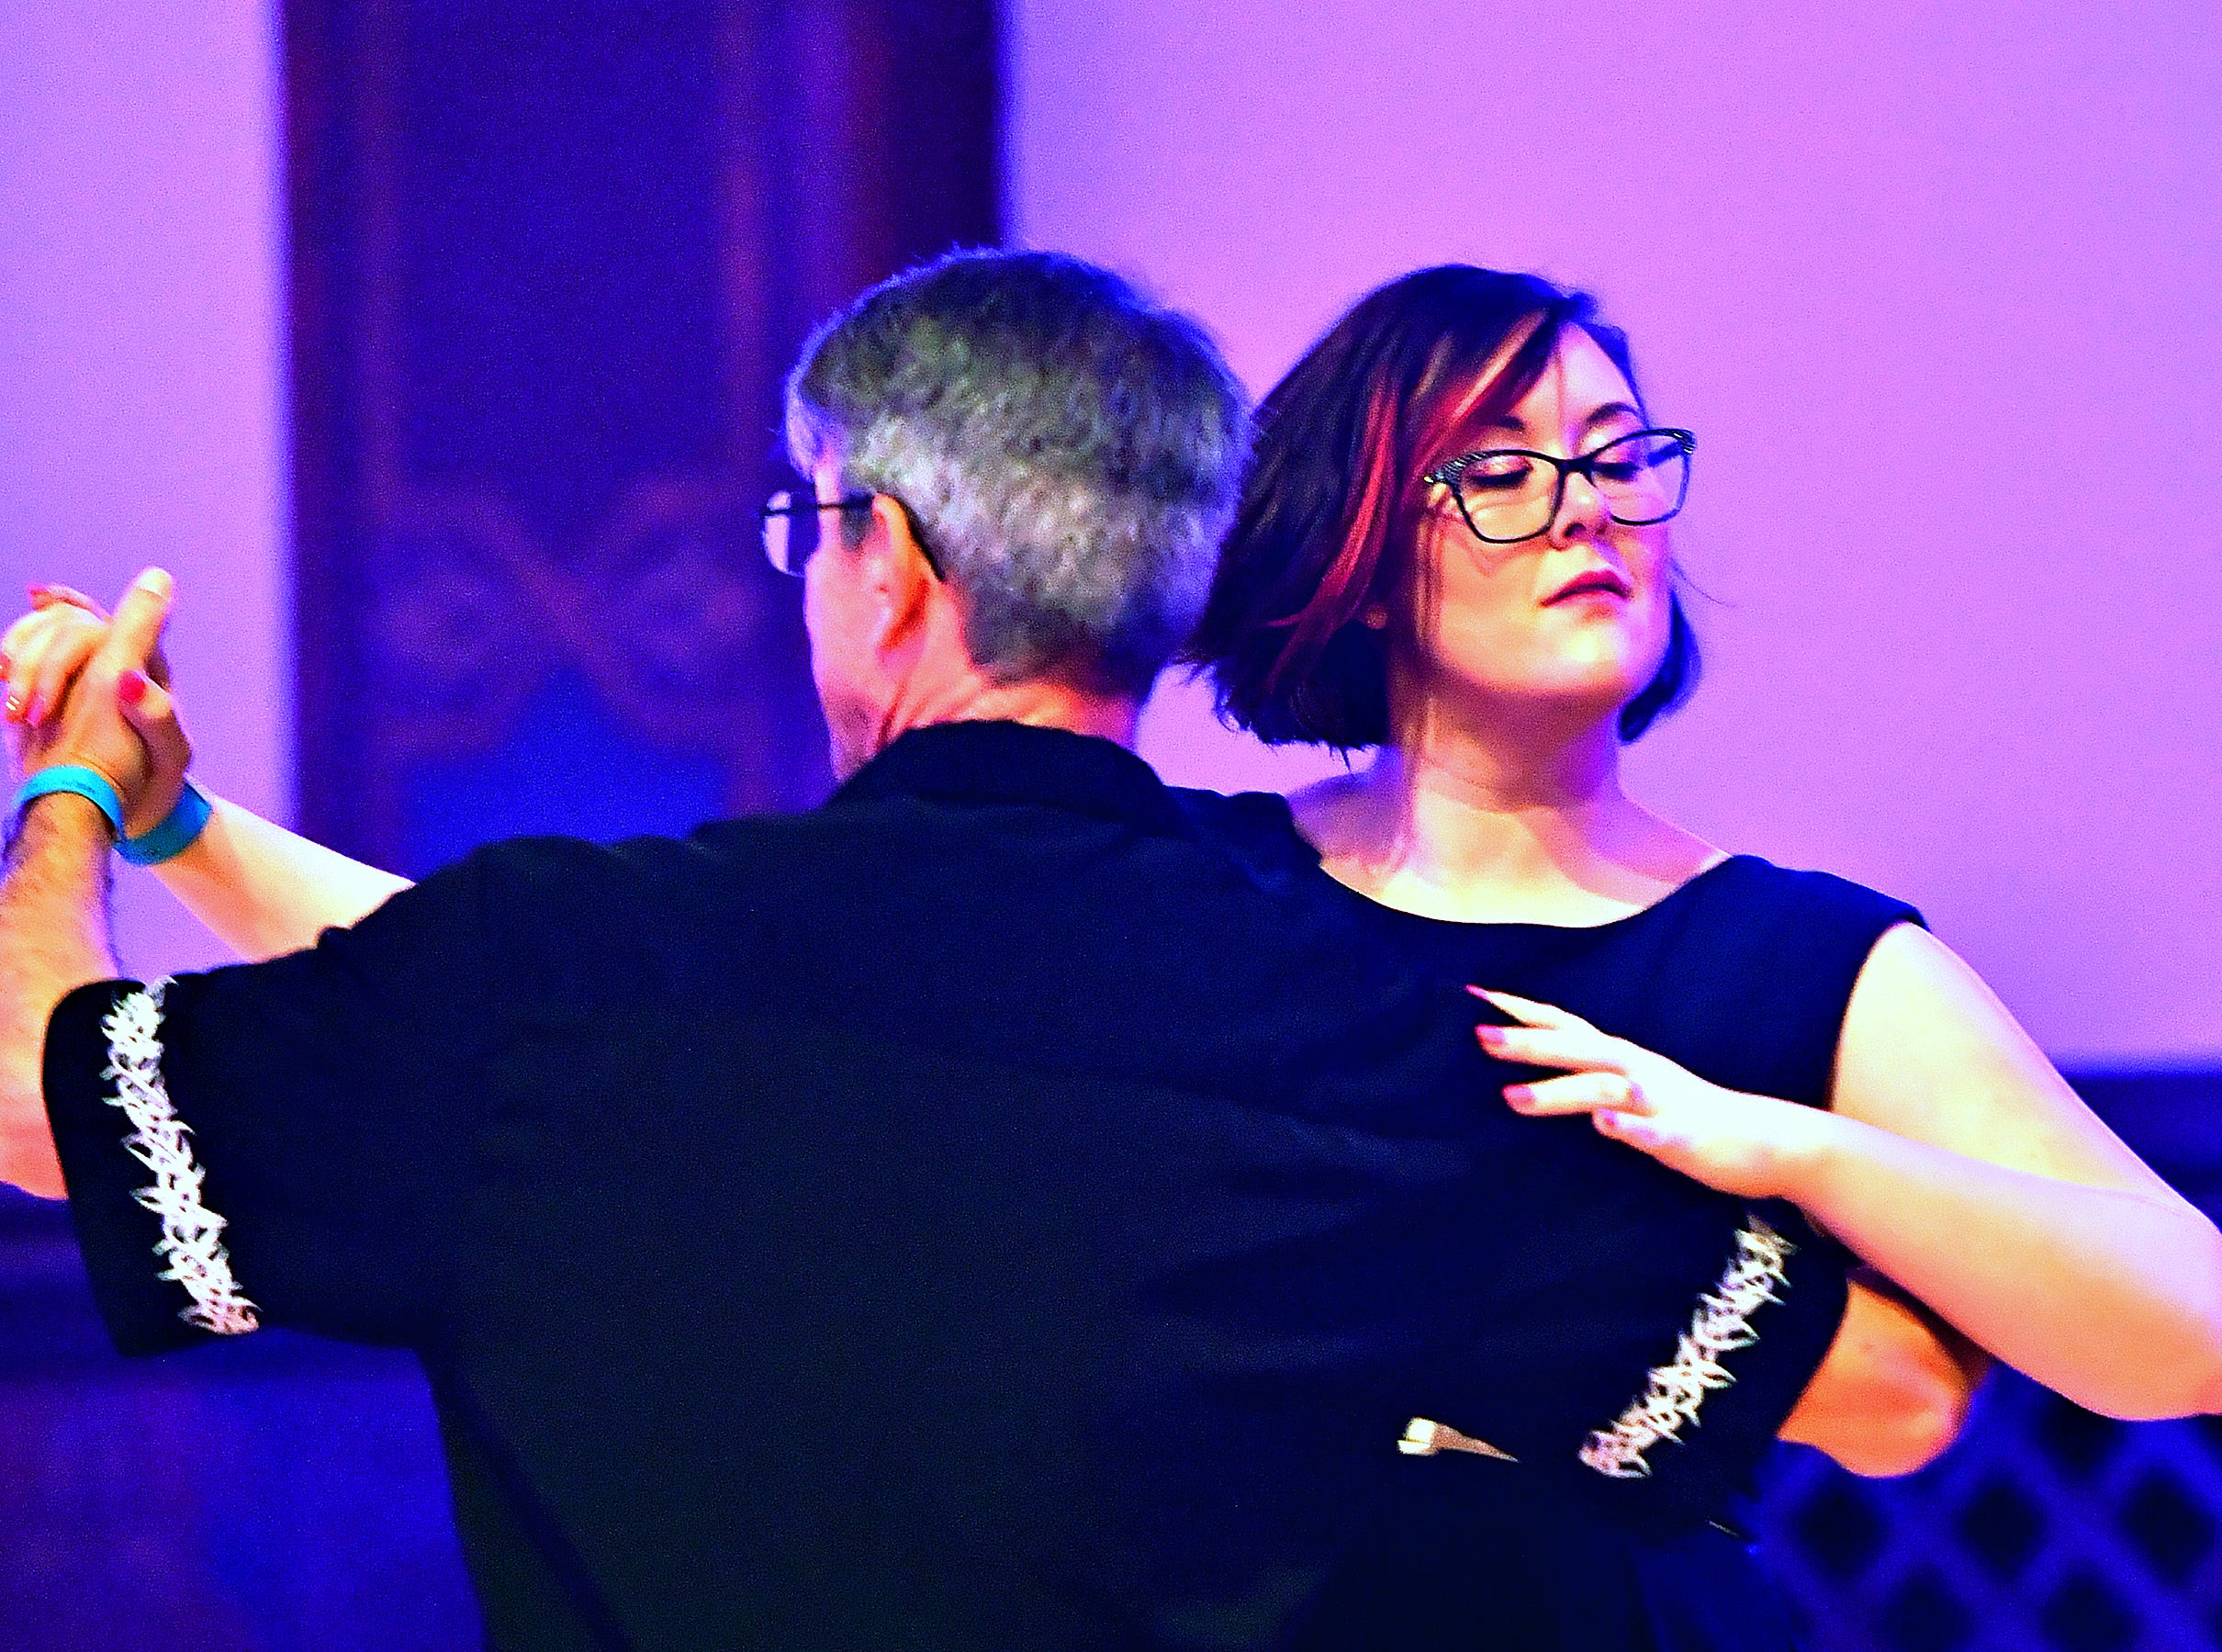 Attendees dance as Parlour Noir performs during Big Swing Thing III Premiere Swing Music & Dance Festival at Valencia Ballroom in York City, Friday, April 12, 2019. Dawn J. Sagert photo